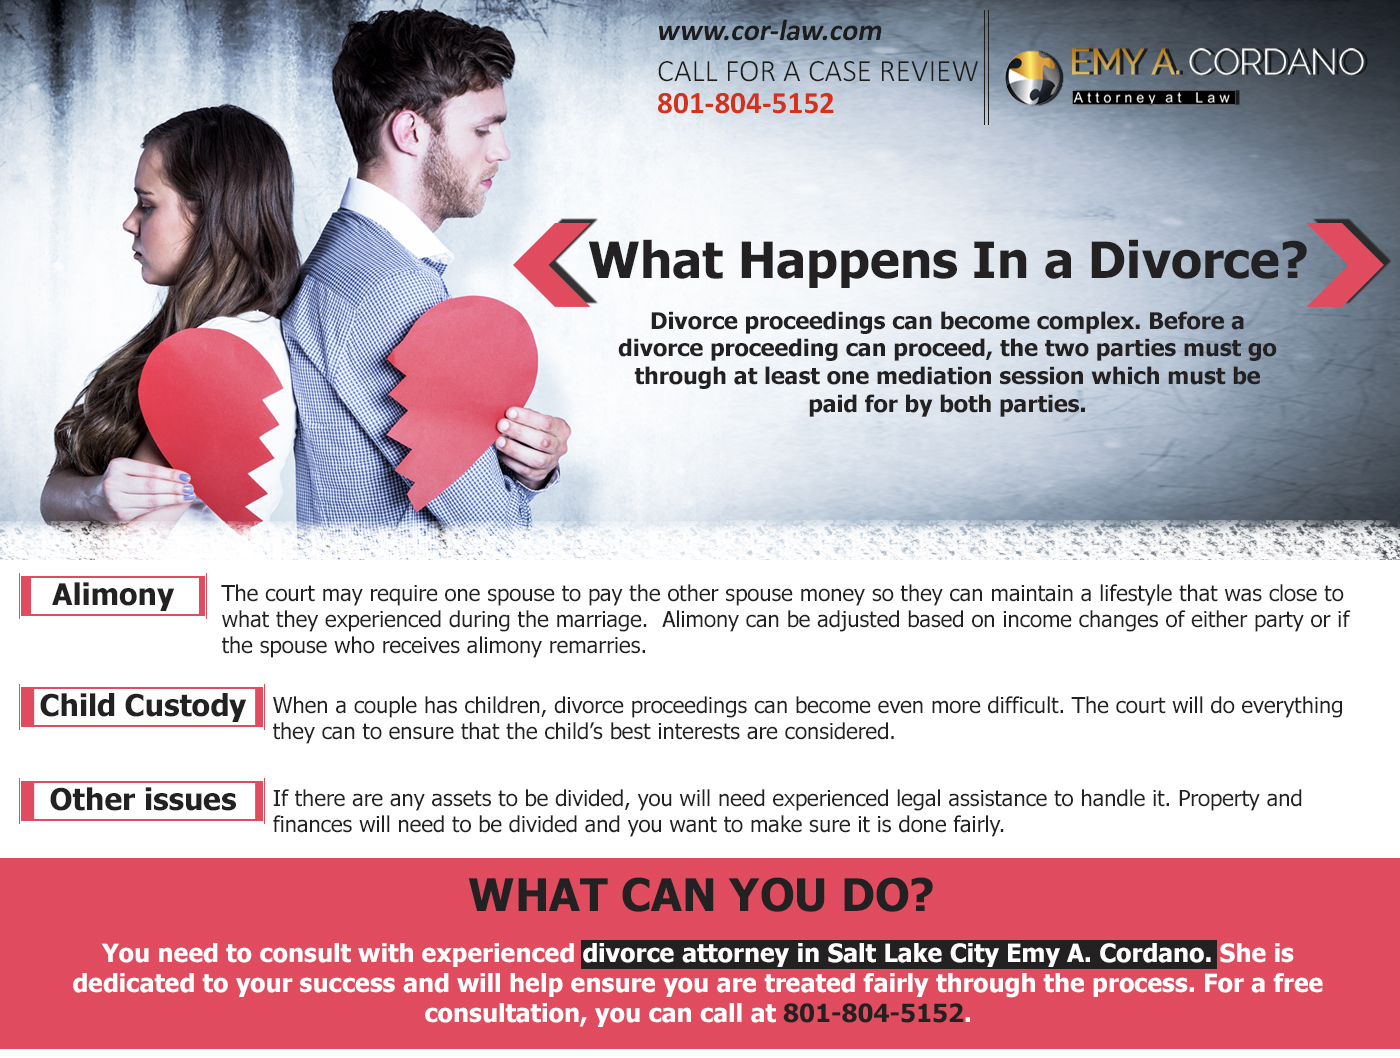 What Happens In a Divorce?